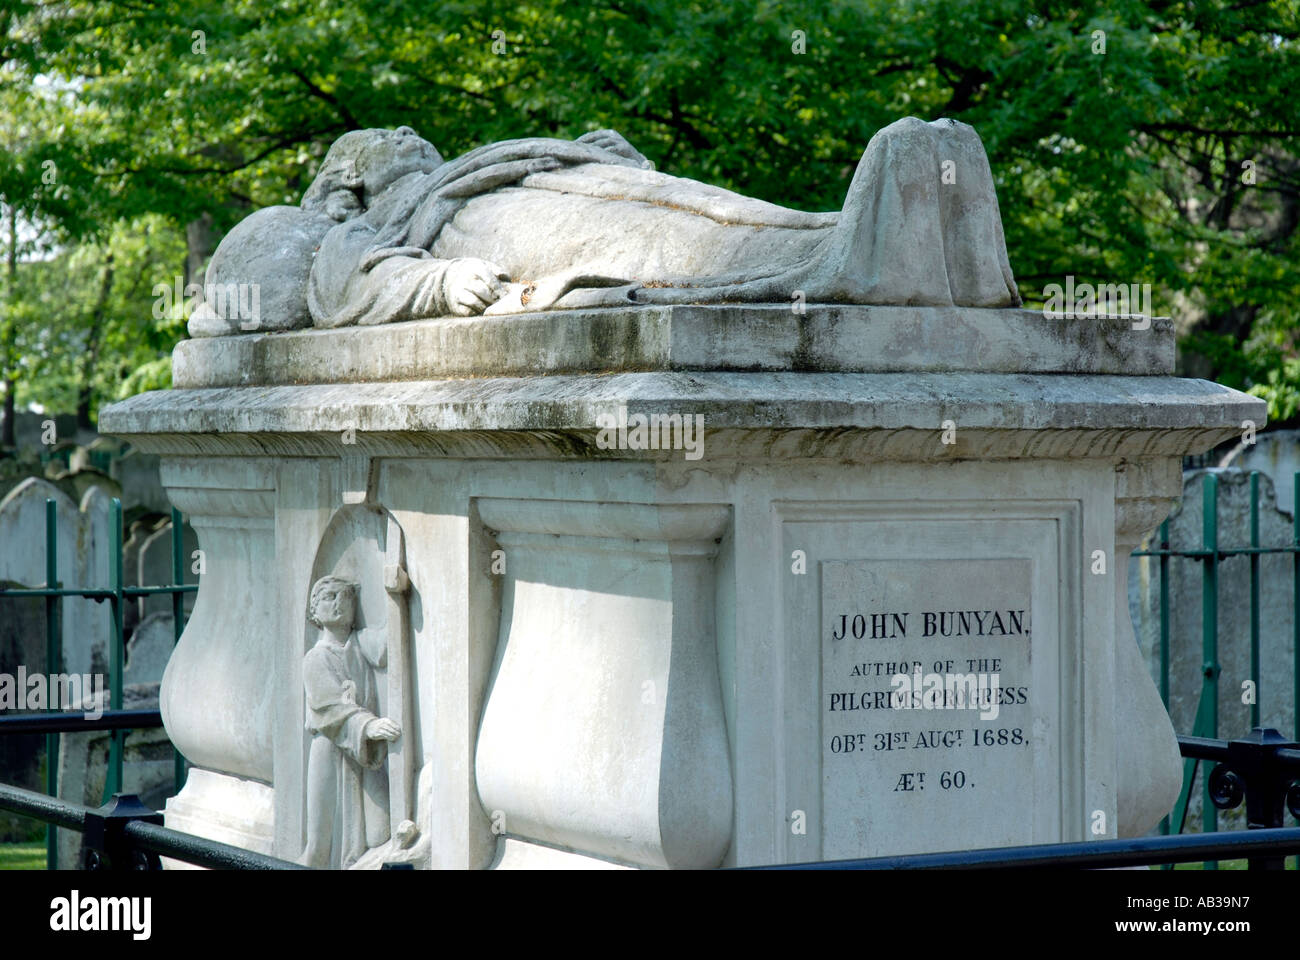 John Bunyan gravestone in Bunhill Fields Cemetery London Borough of Islington - Stock Image